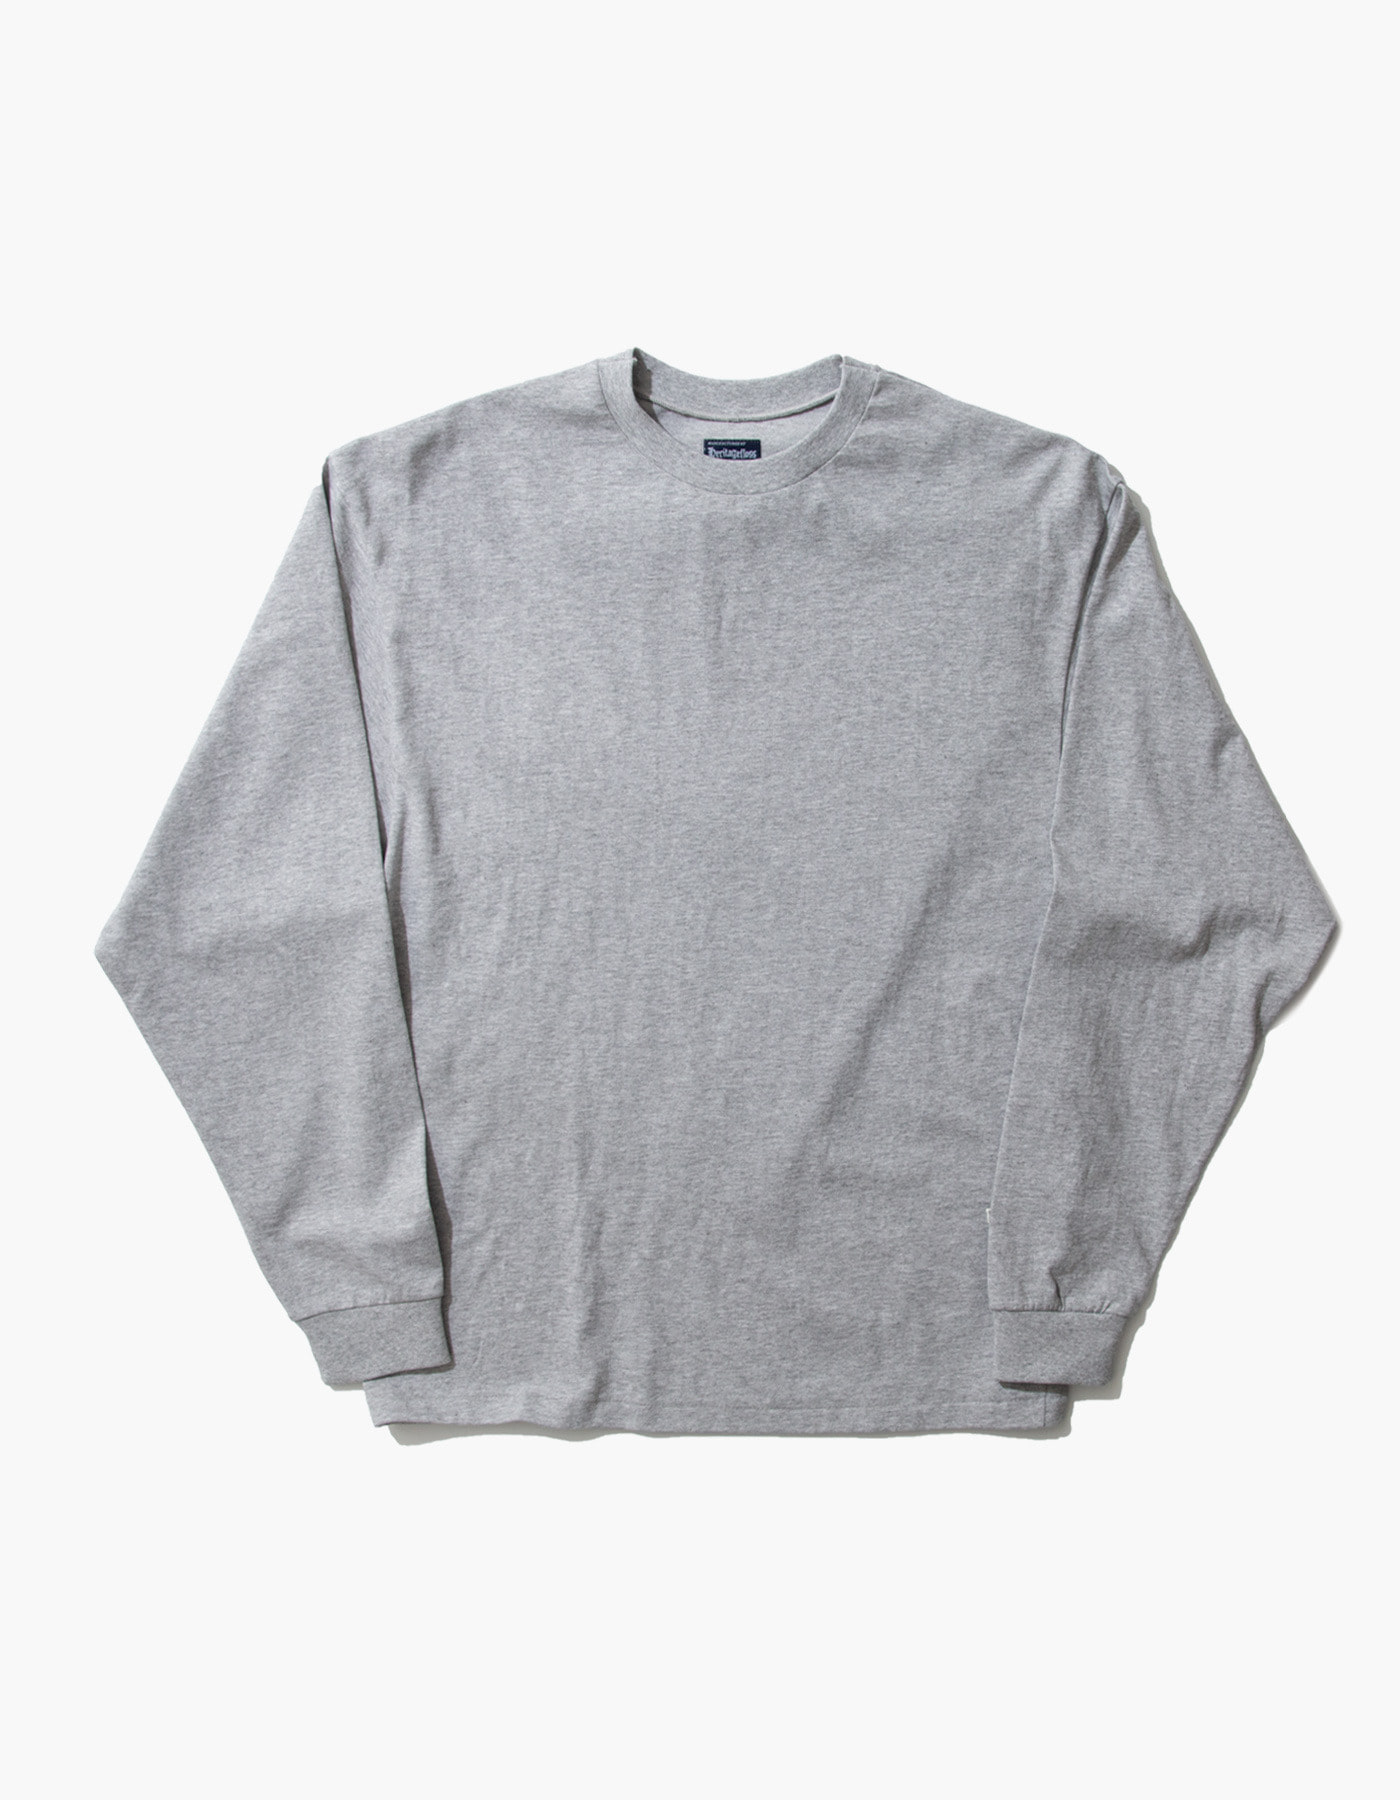 ACS COMPACT YARN LONG SLEEVE / M.GREY(5%)